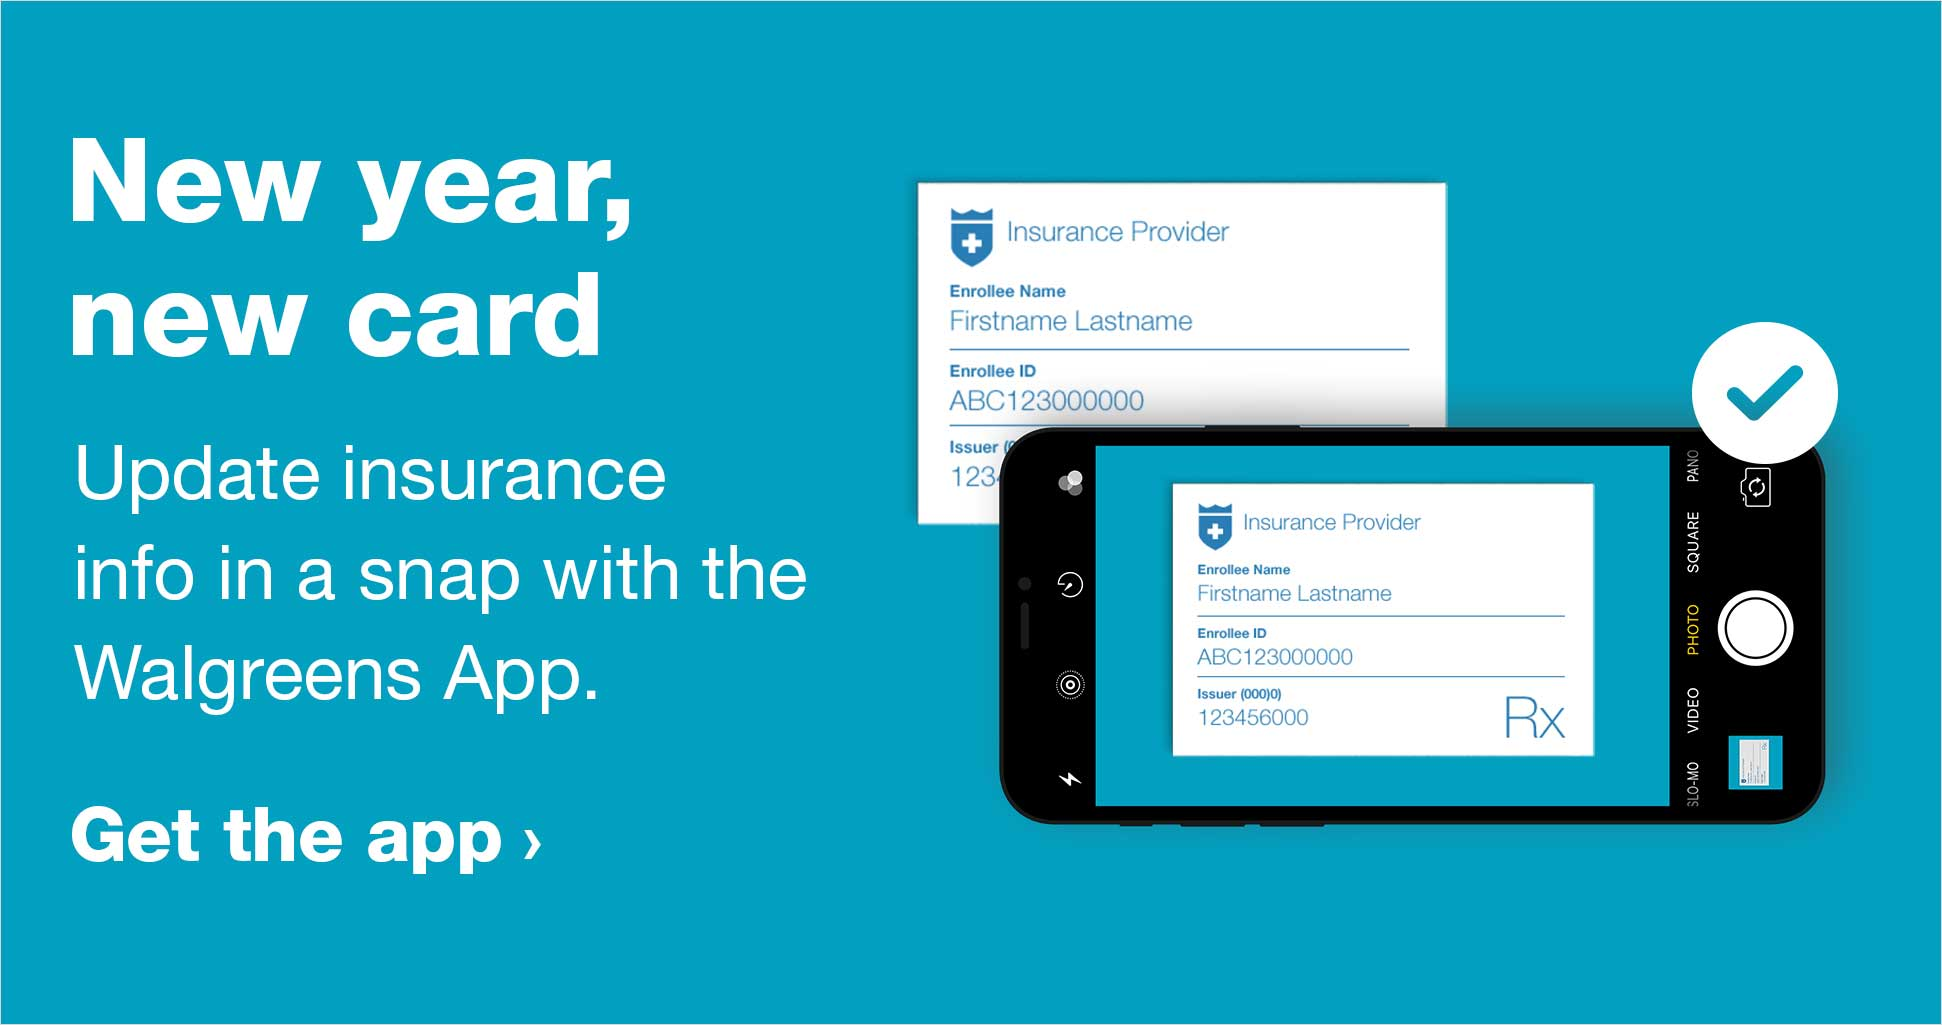 New year, new card. Update insurance info in a snap with the Walgreens App. Get the app.